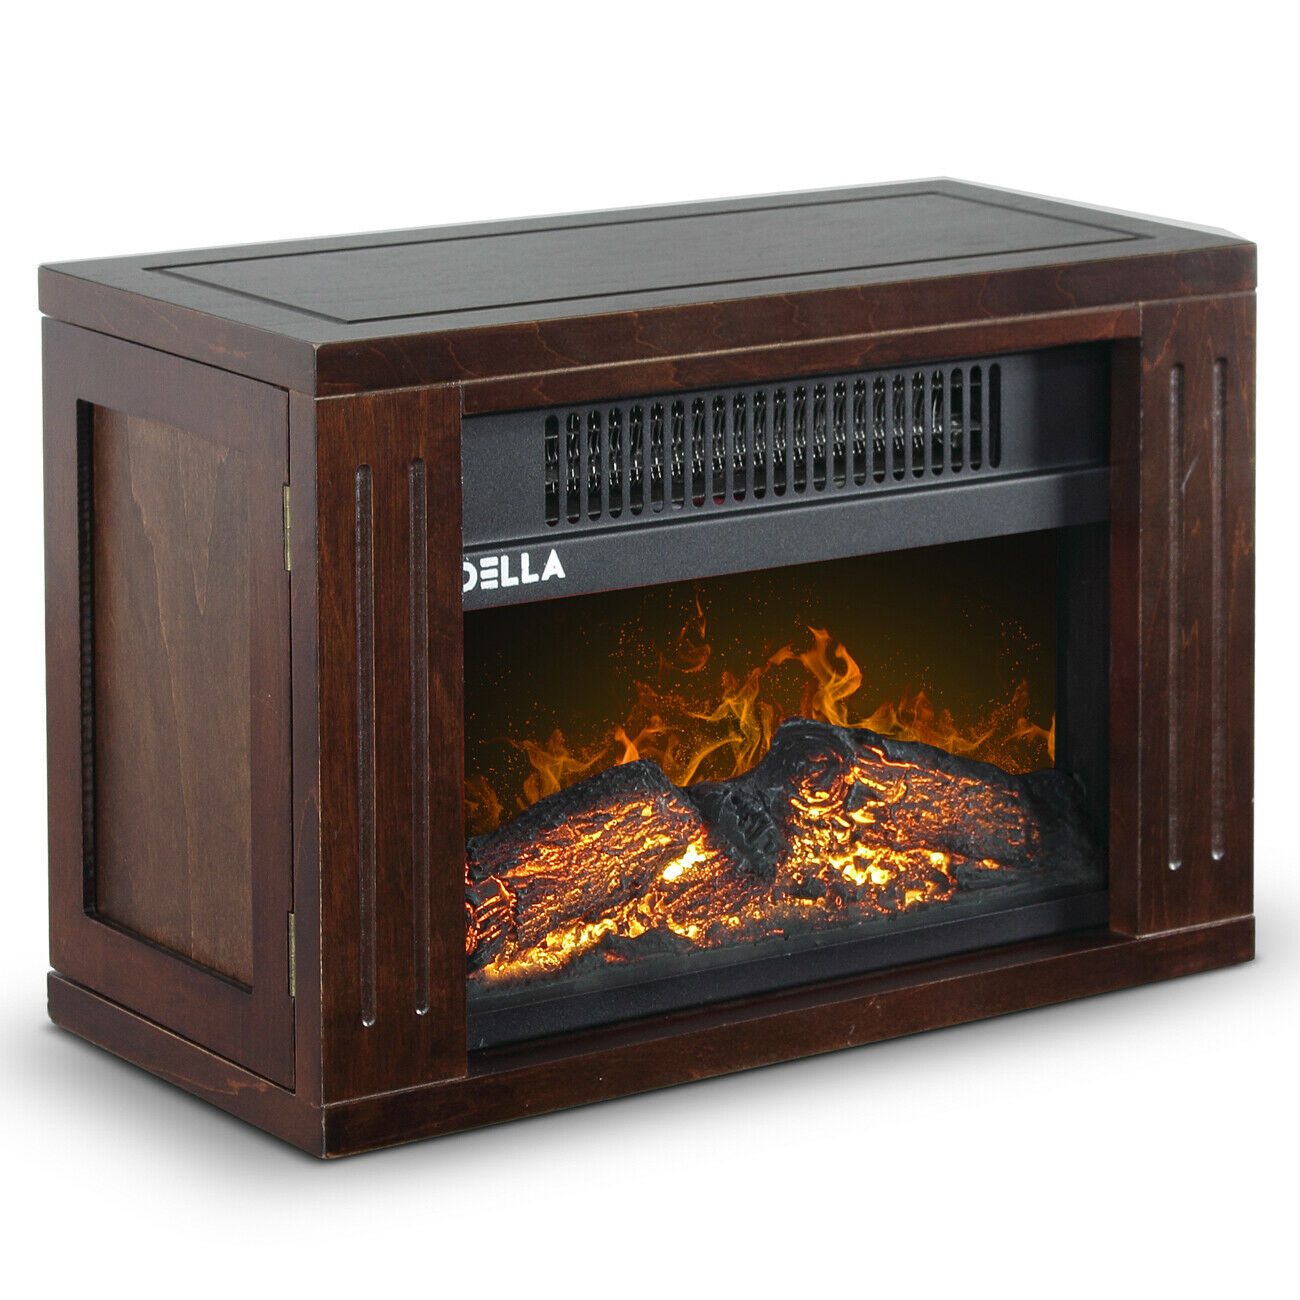 Portable Fireplace Mini Electric Wood Burn Outdoor Indoor Fireplace Heater - Morealis